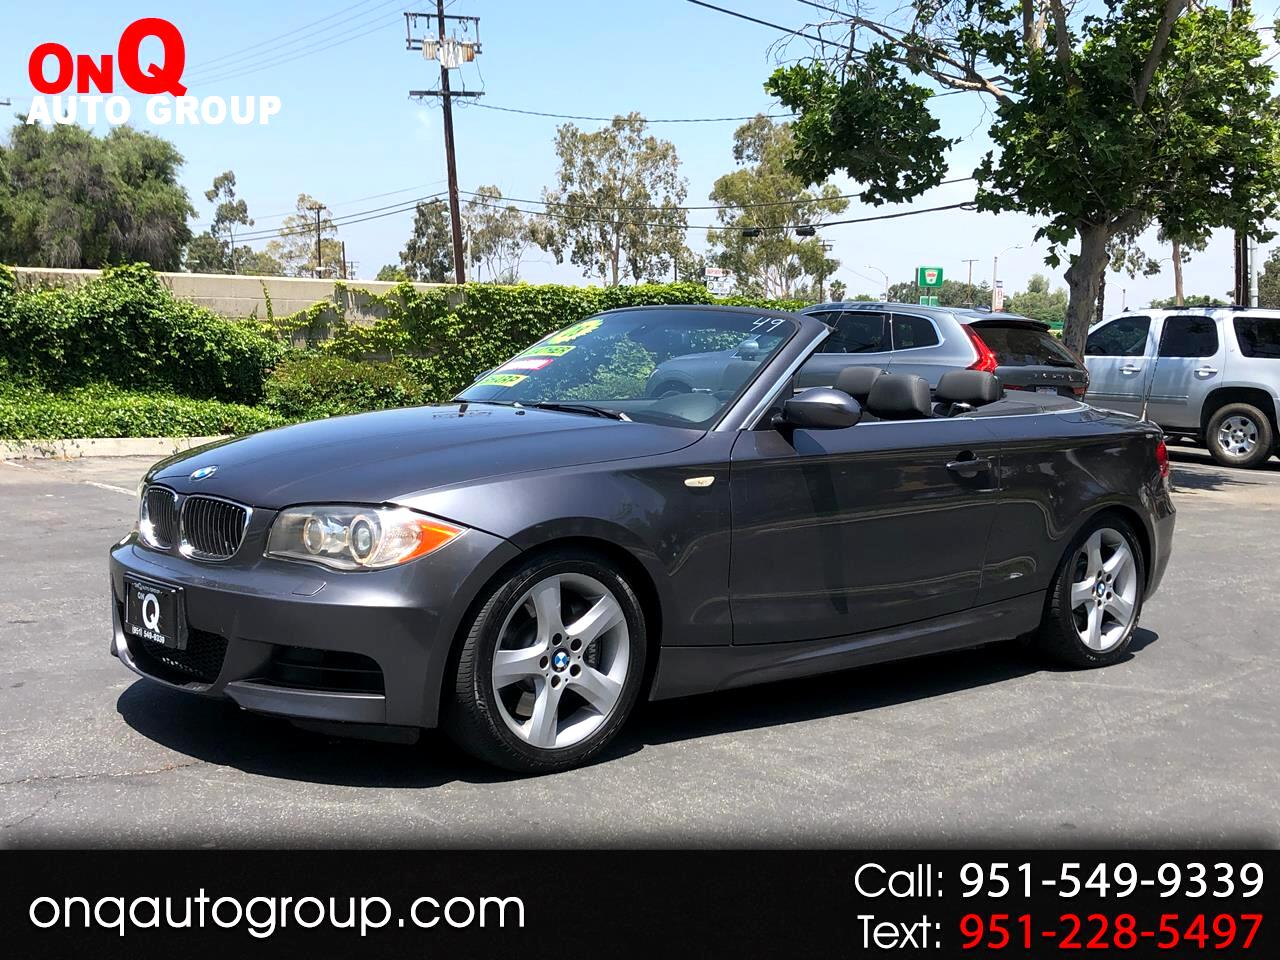 2008 BMW 1 Series 2dr Conv 135i